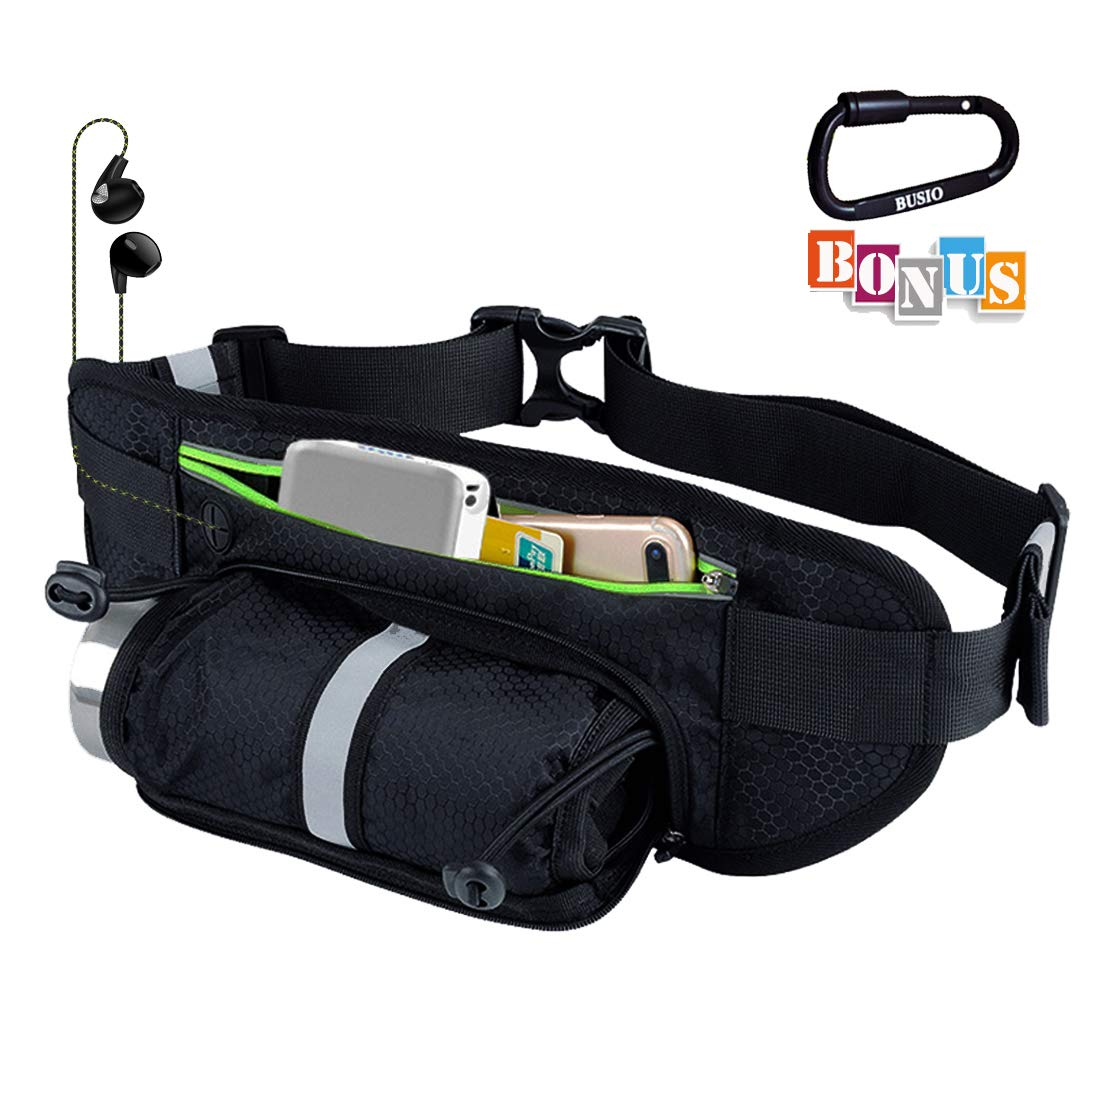 Slim Gym Fanny Pack Bike Running Waist Bag Women Men, Phone Pouch Bottle Holder Hydration Pocket Waterproof for Outdoor Workout, Travel, Hunting, Fishing BUSIO